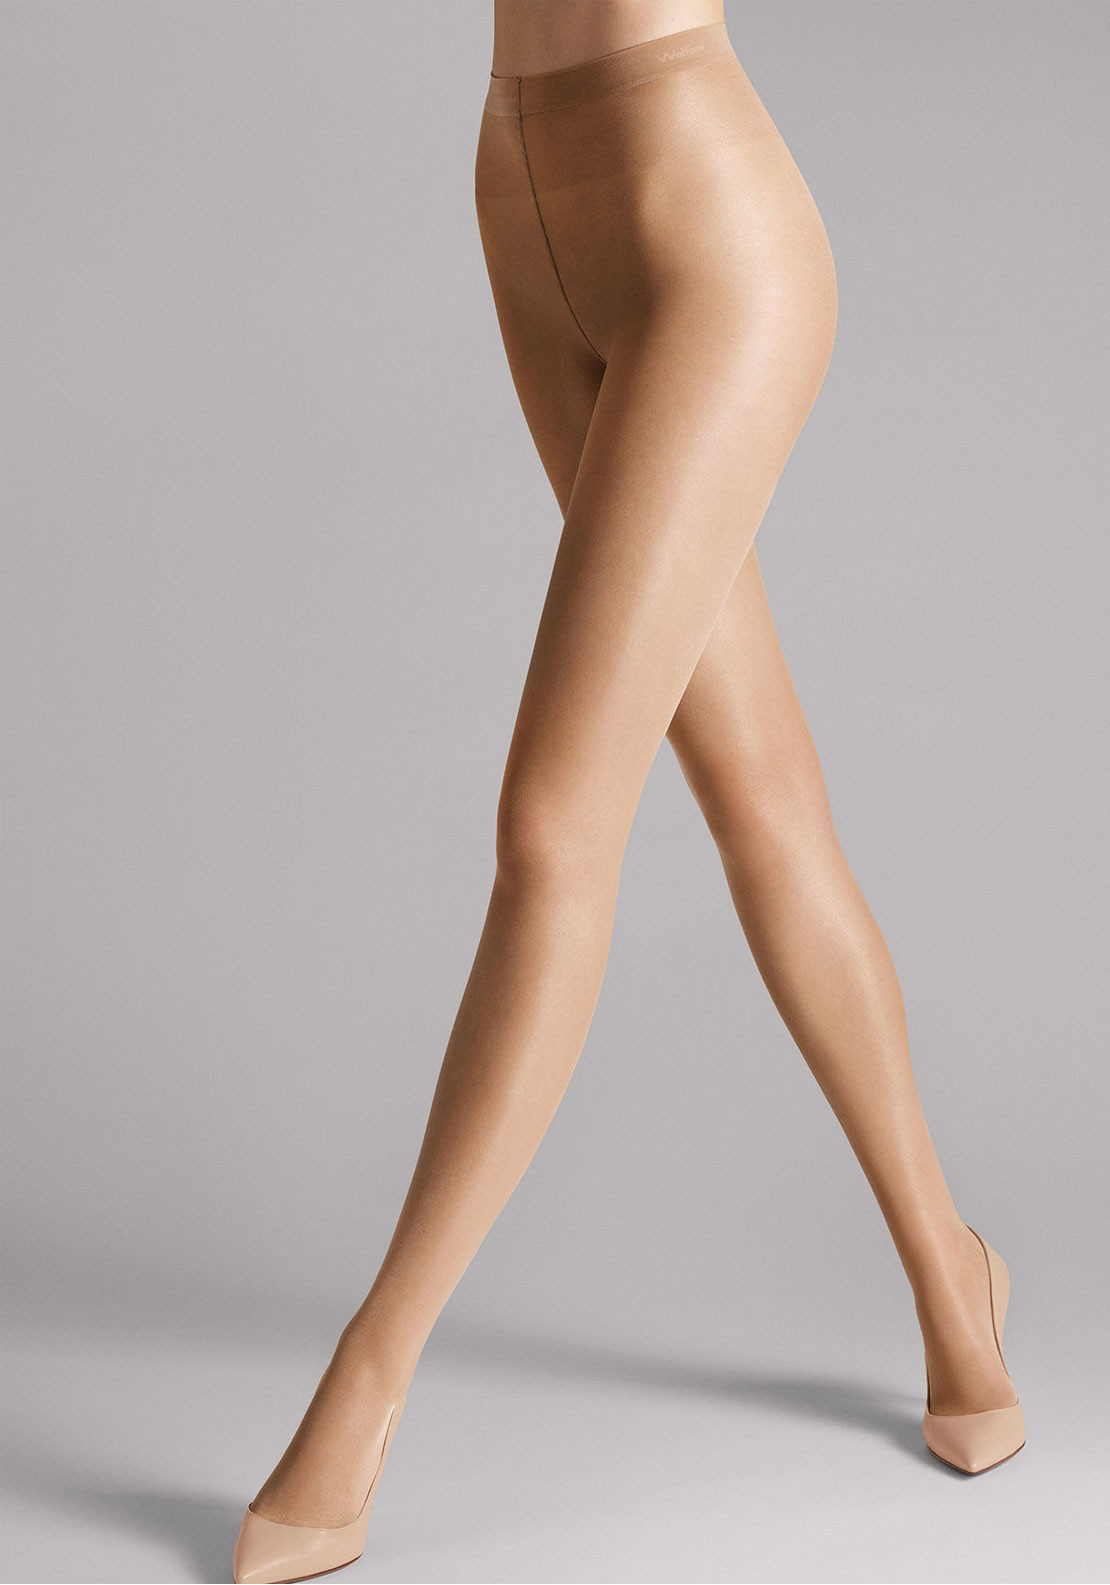 Wolford Satin Touch 20 Sheer Tights, Fairly Light